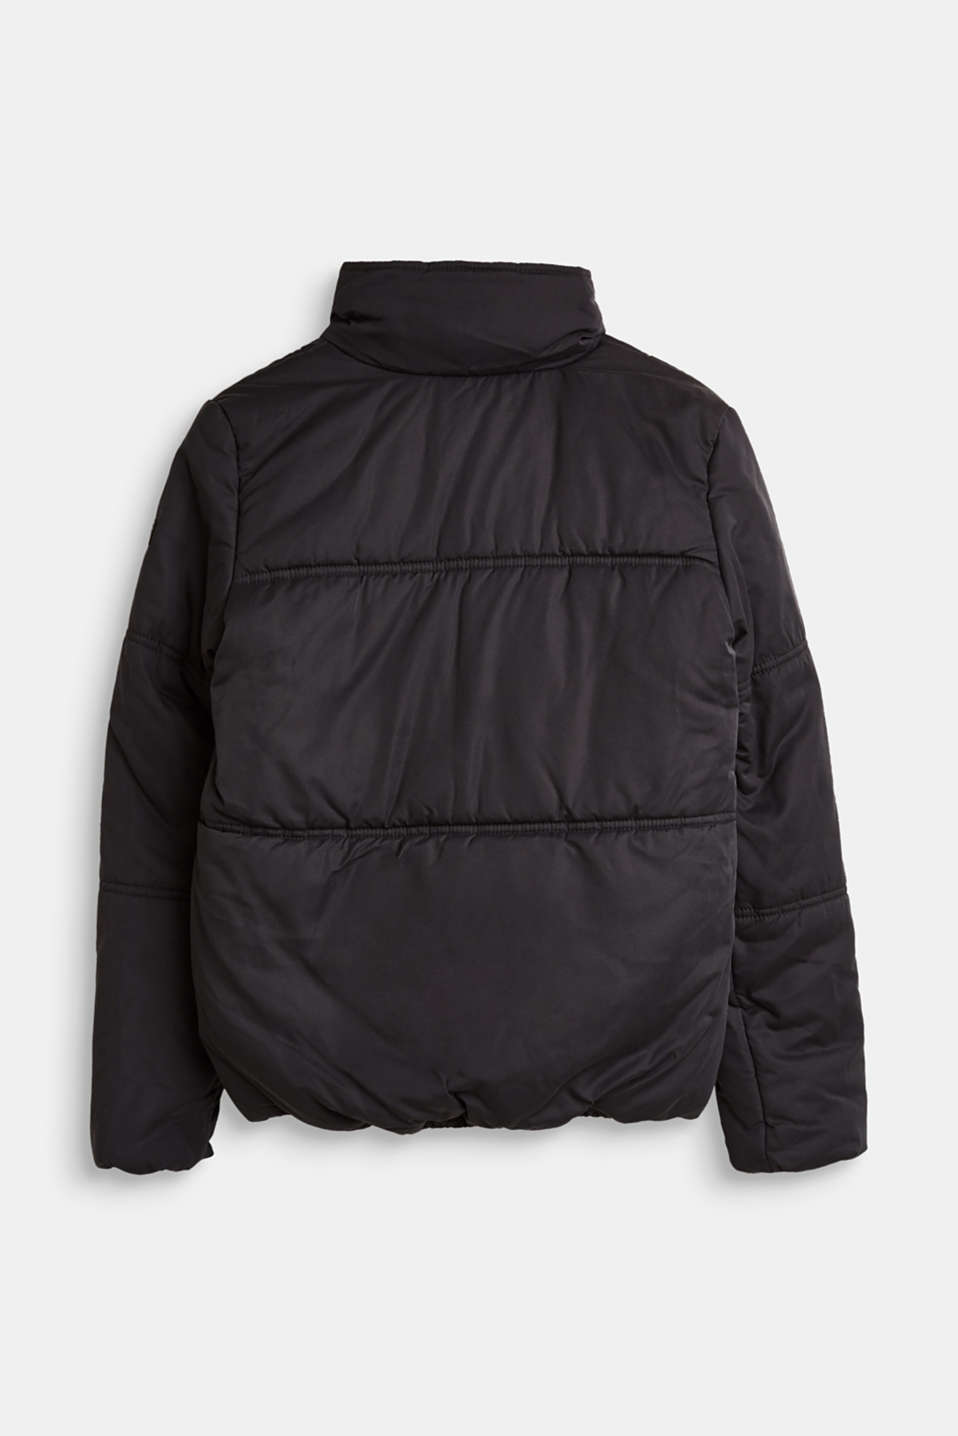 Jackets outdoor woven, LCBLACK, detail image number 1